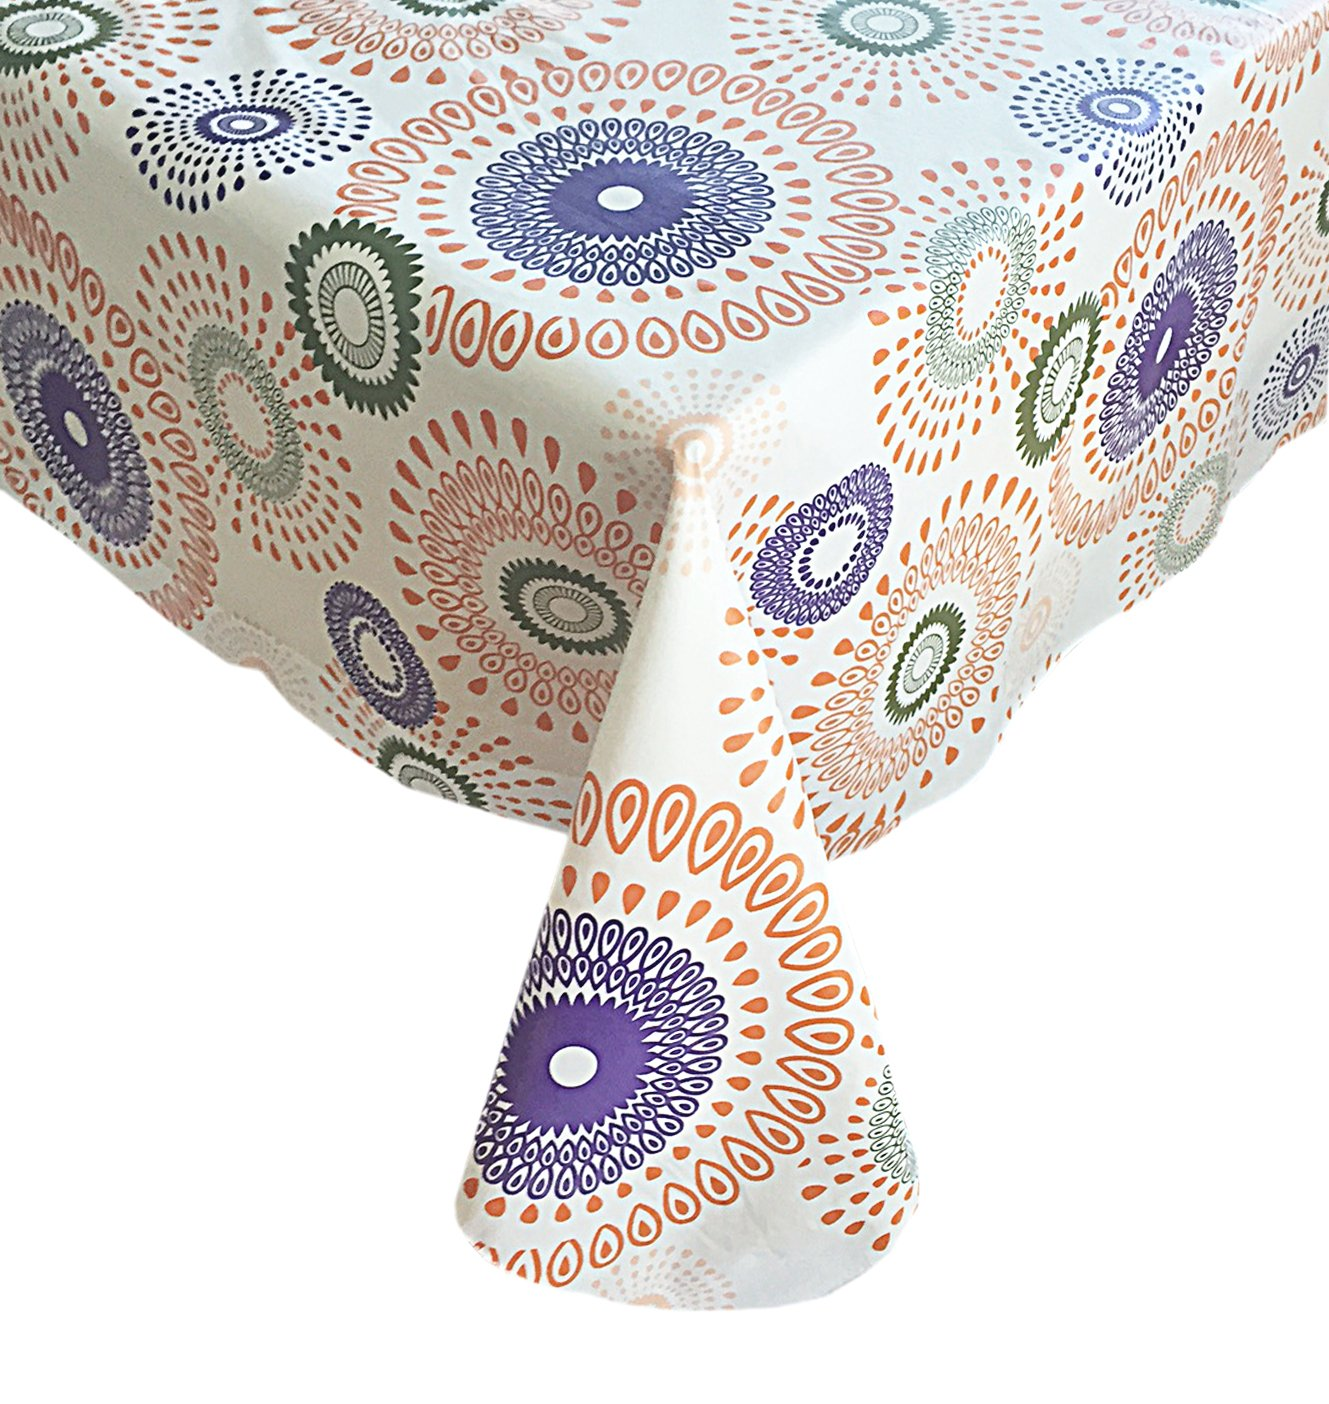 Whimsy Circle Contemporary Print Indoor/Outdoor Vinyl Flannel Backed Tablecloth - 60 x 84 Oval - Warmtone